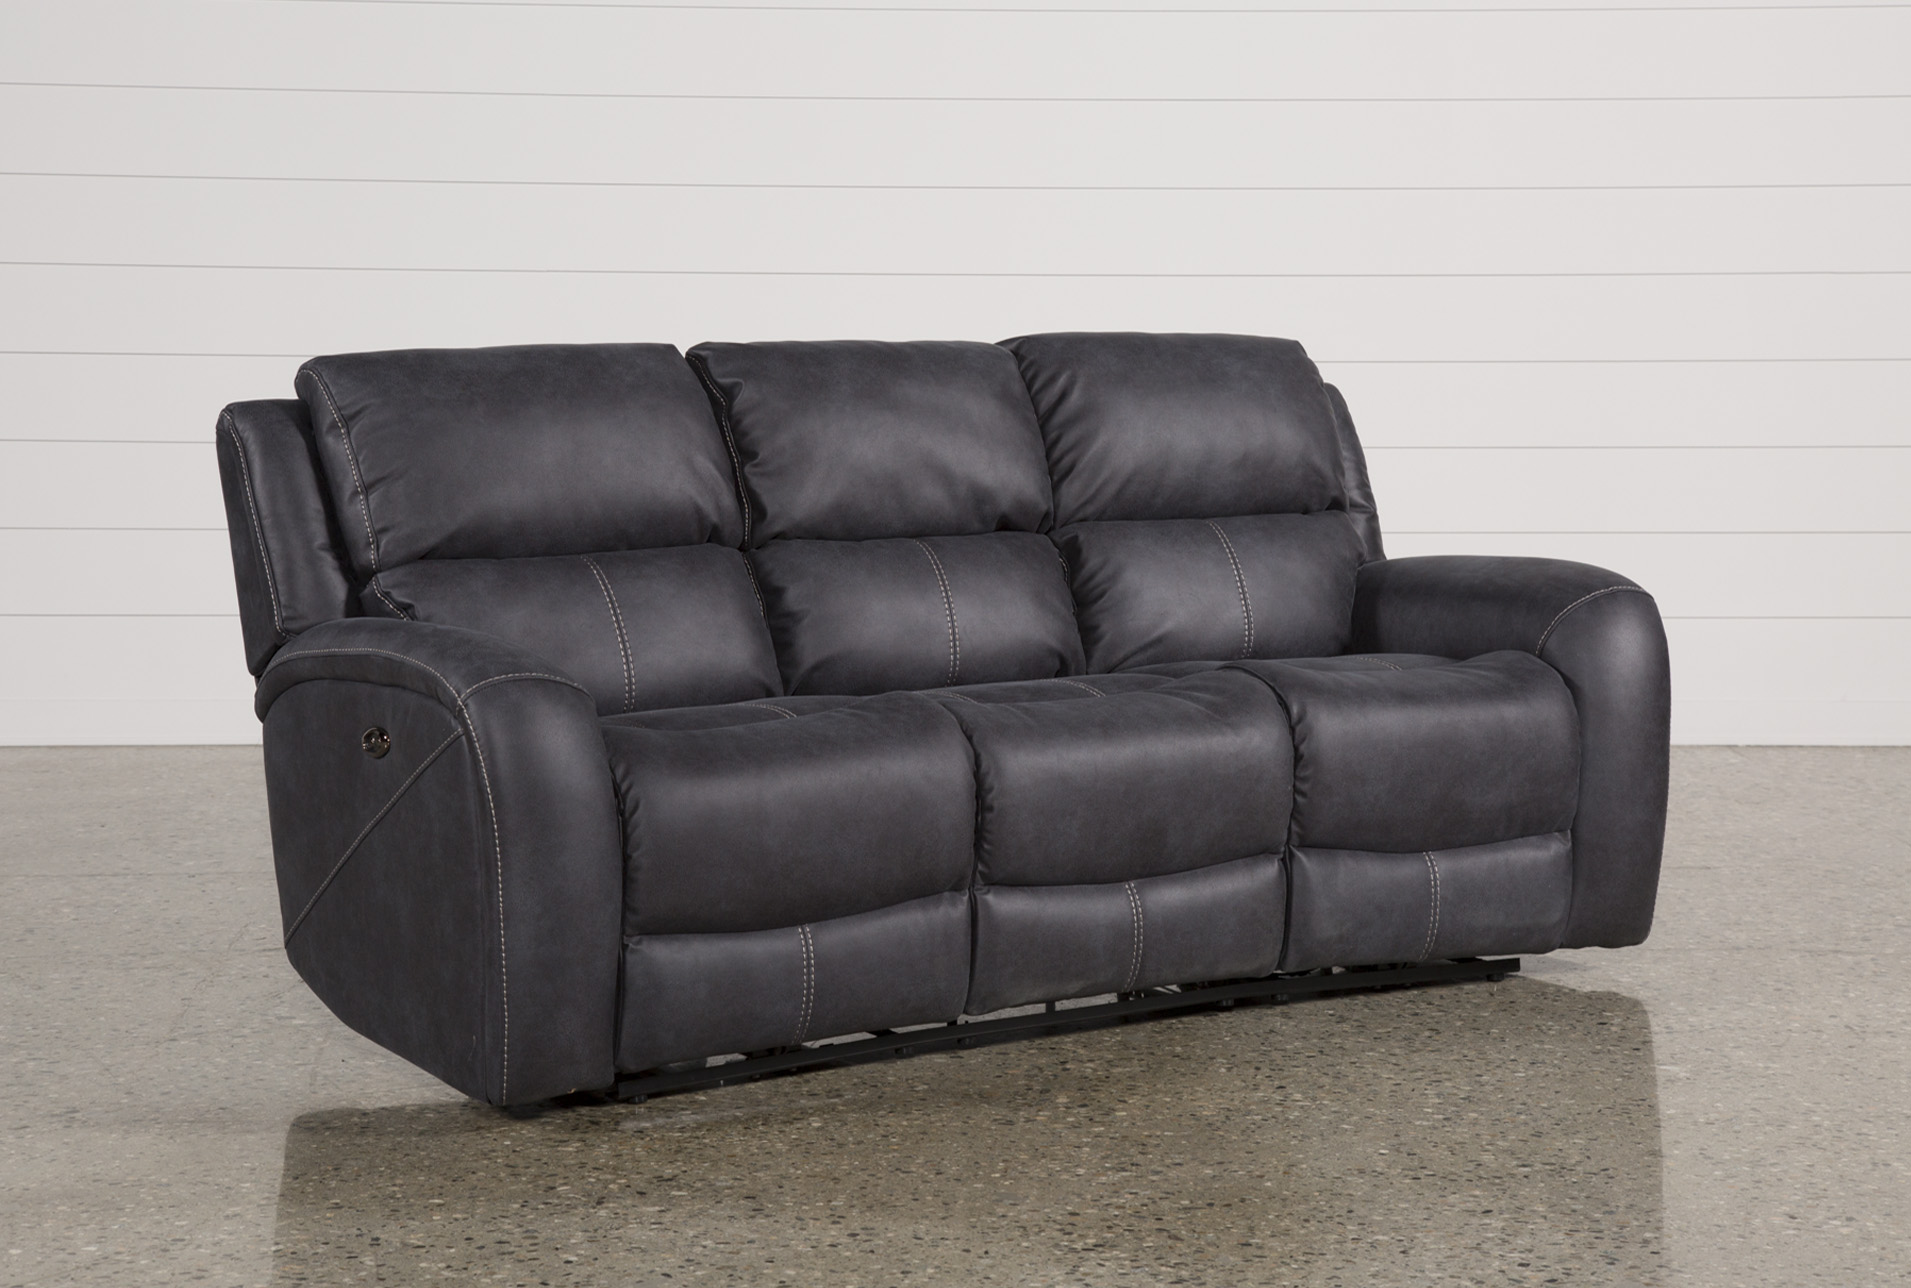 Genial Deegan Charcoal Power Reclining Sofa (Qty: 1) Has Been Successfully Added  To Your Cart.